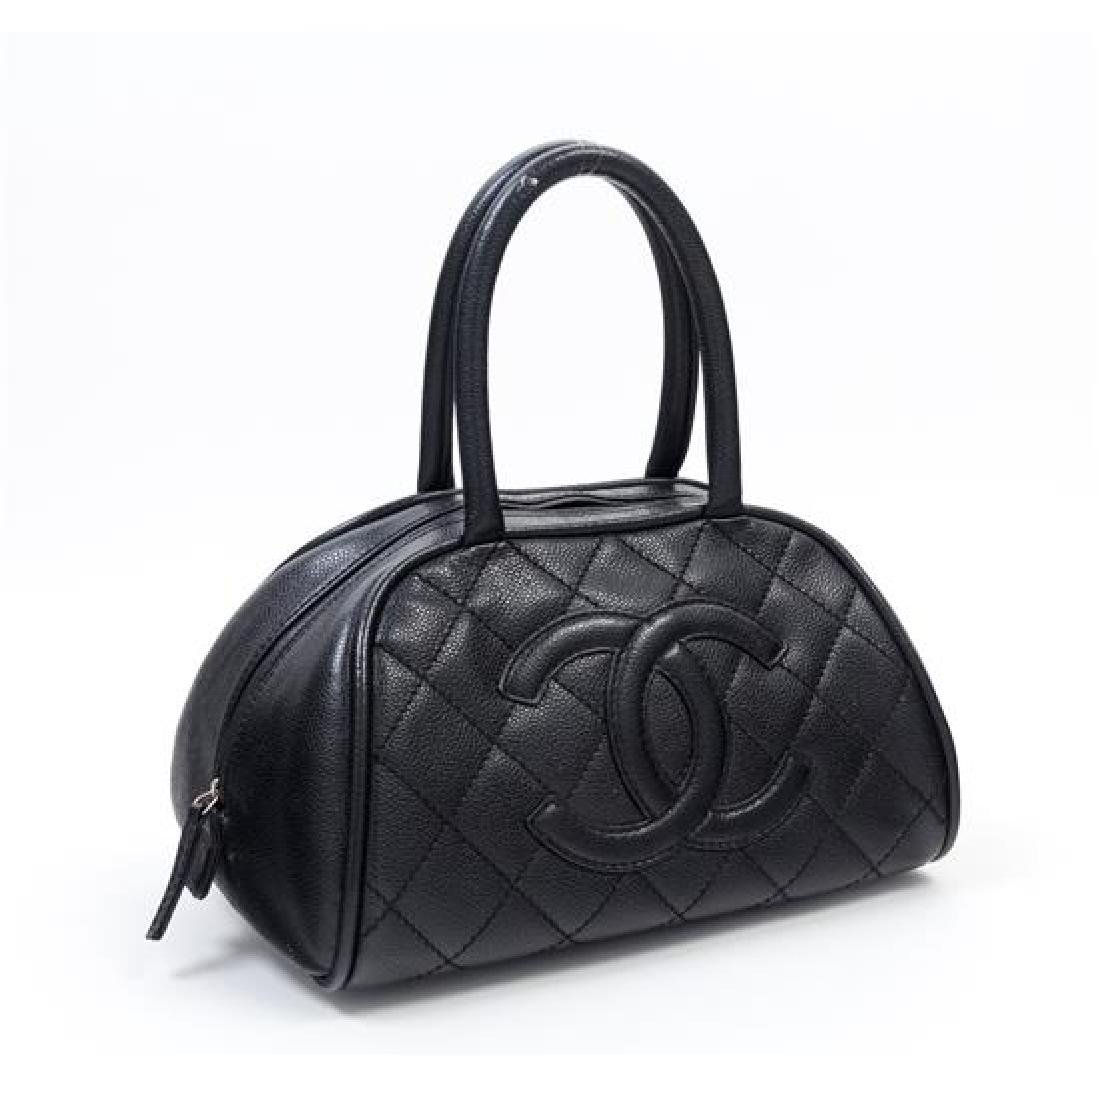 "A Chanel Black Caviar Quilted Bowler Bag, 10.5"" x 6.5"" - 2"